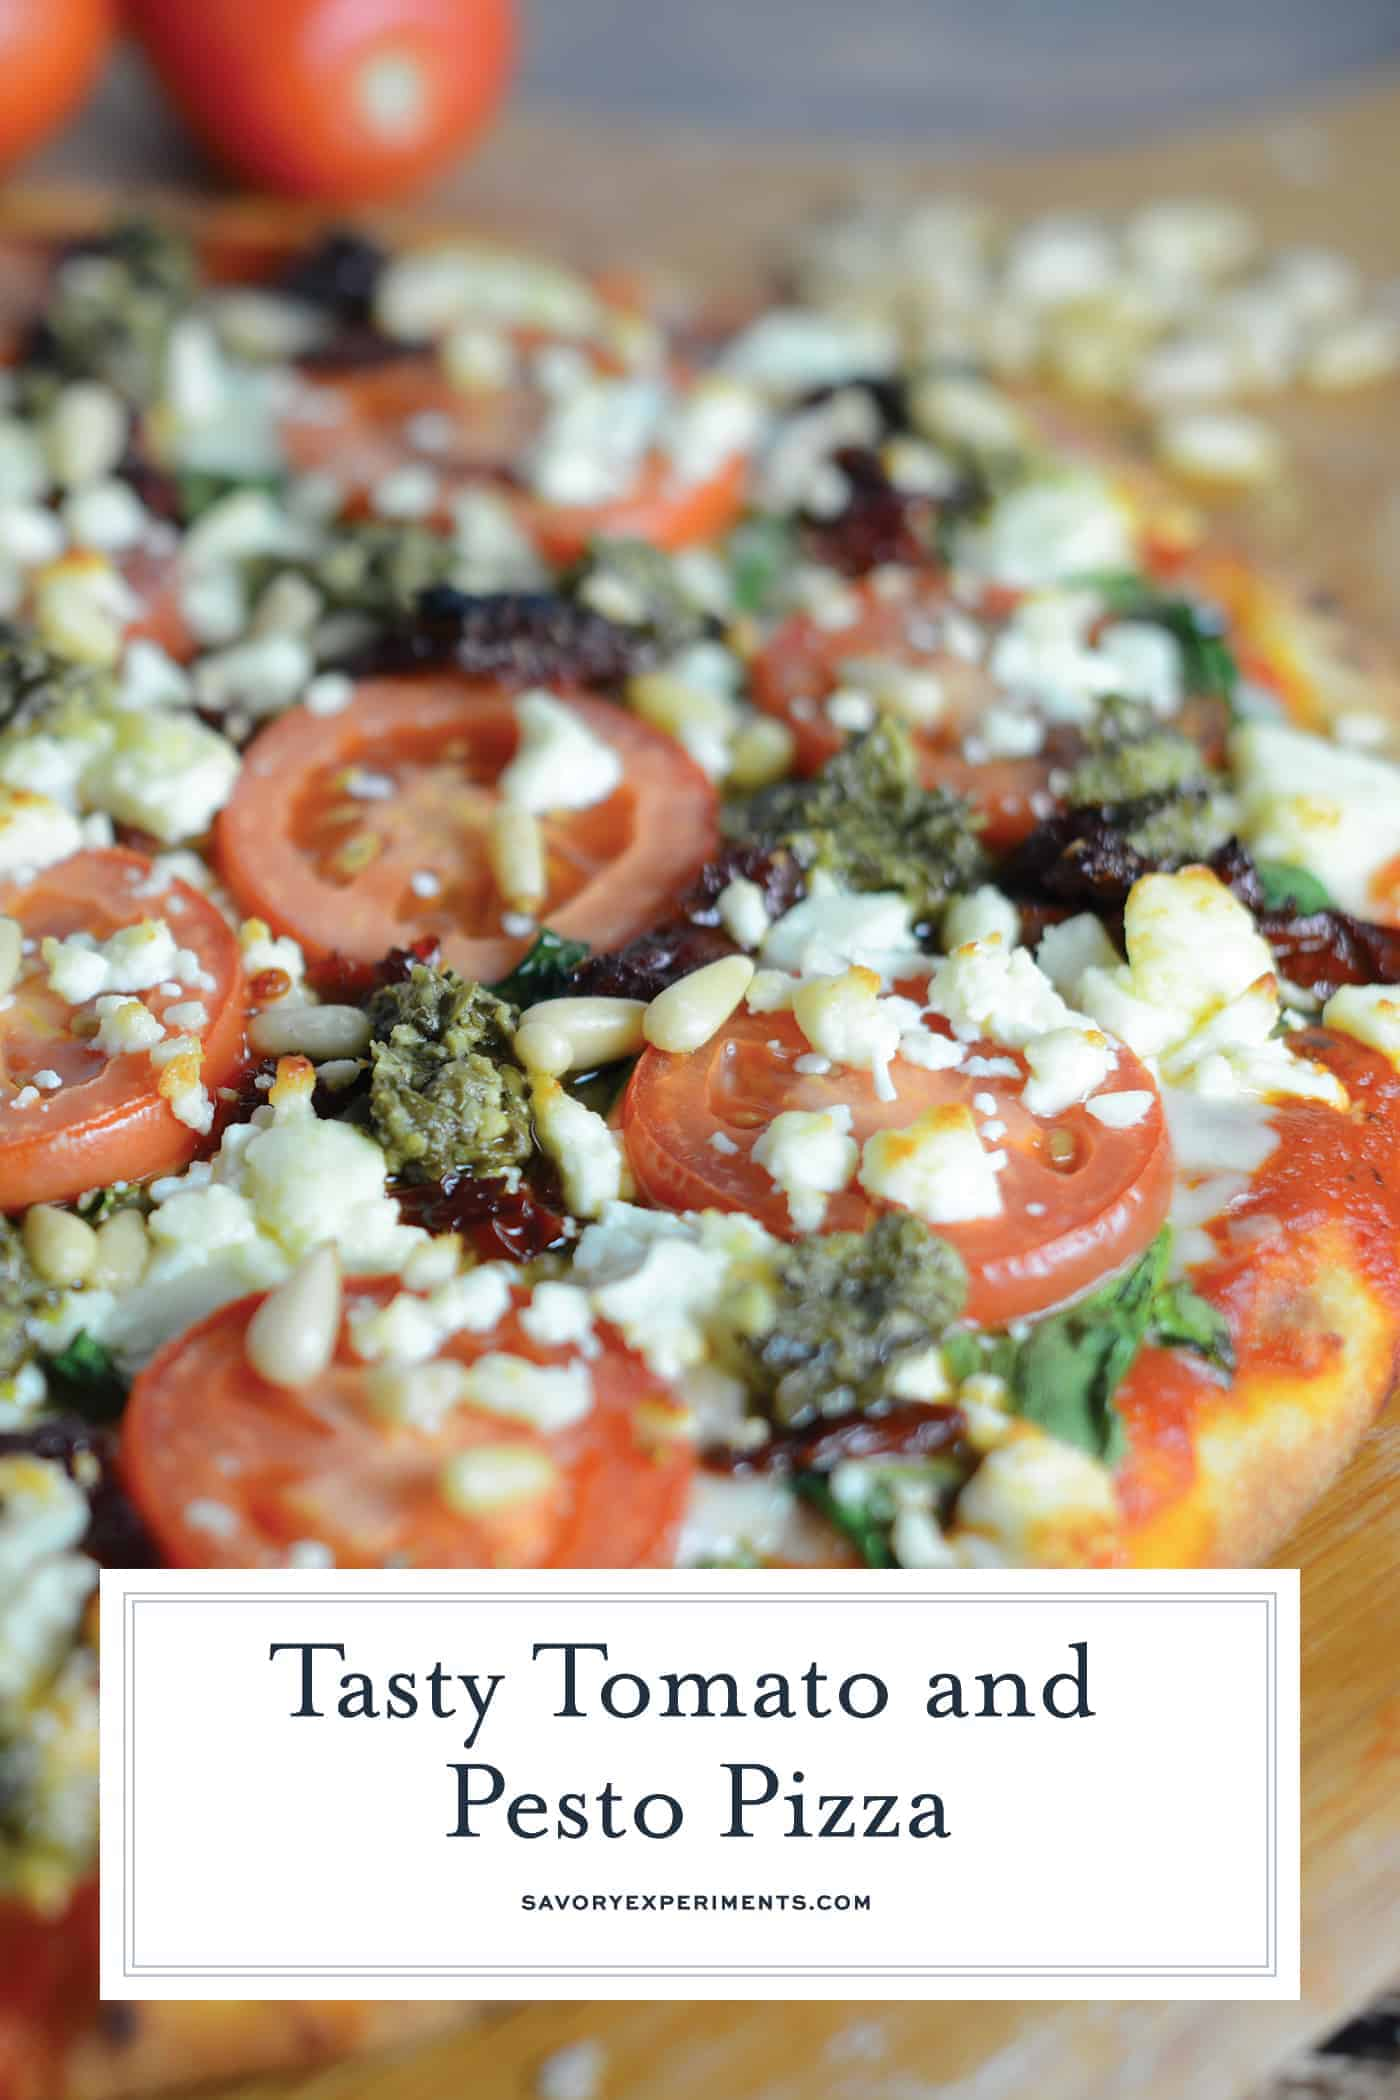 Tomato Pesto Pizza is an easy vegetarian pizza with fresh tomato slices, mozzarella and feta cheese, sun dried tomatoes, pesto and toasted pine nuts. #homemadepizza #pizzafromscratch #pestopizza www.savoryexperiments.com